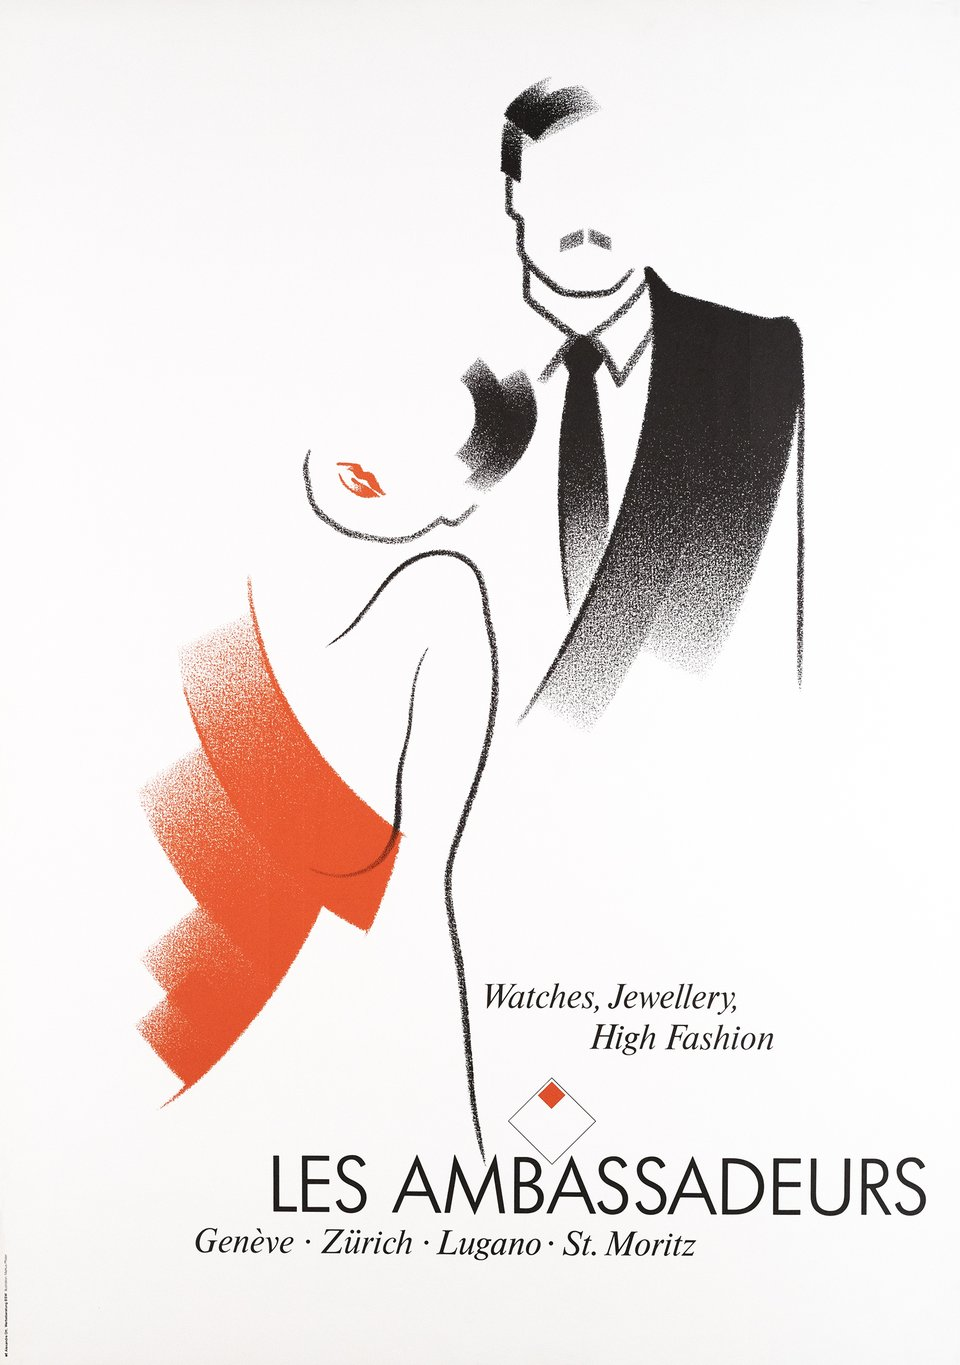 Les Ambassadeurs, Watches Jewellery Fashion – Vintage poster – Markus PFISTER – 1985